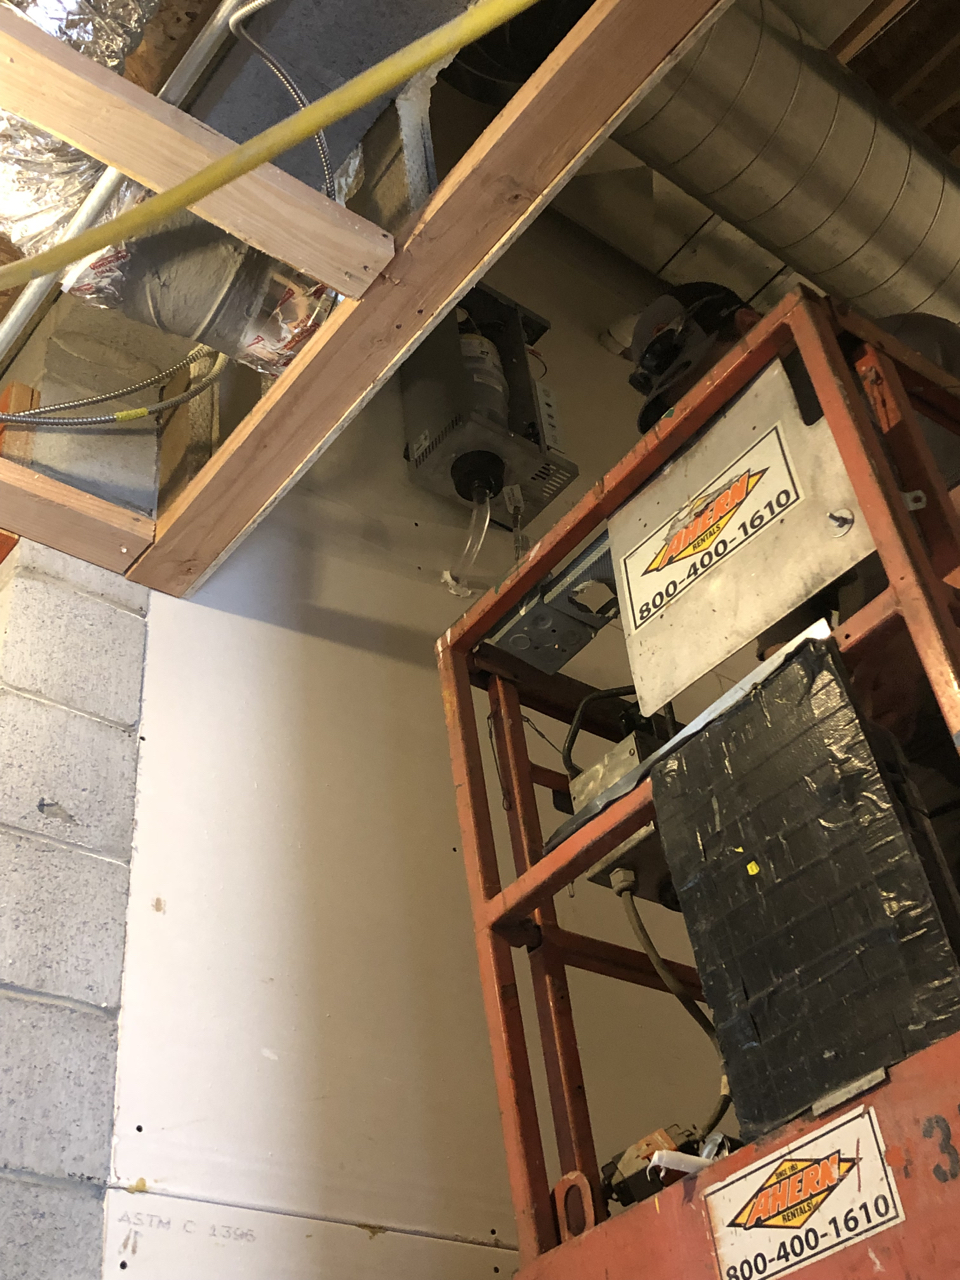 Just above the lift you can see the steam humidifier that is being installed in order to raise the humidity of the instrument gallery.